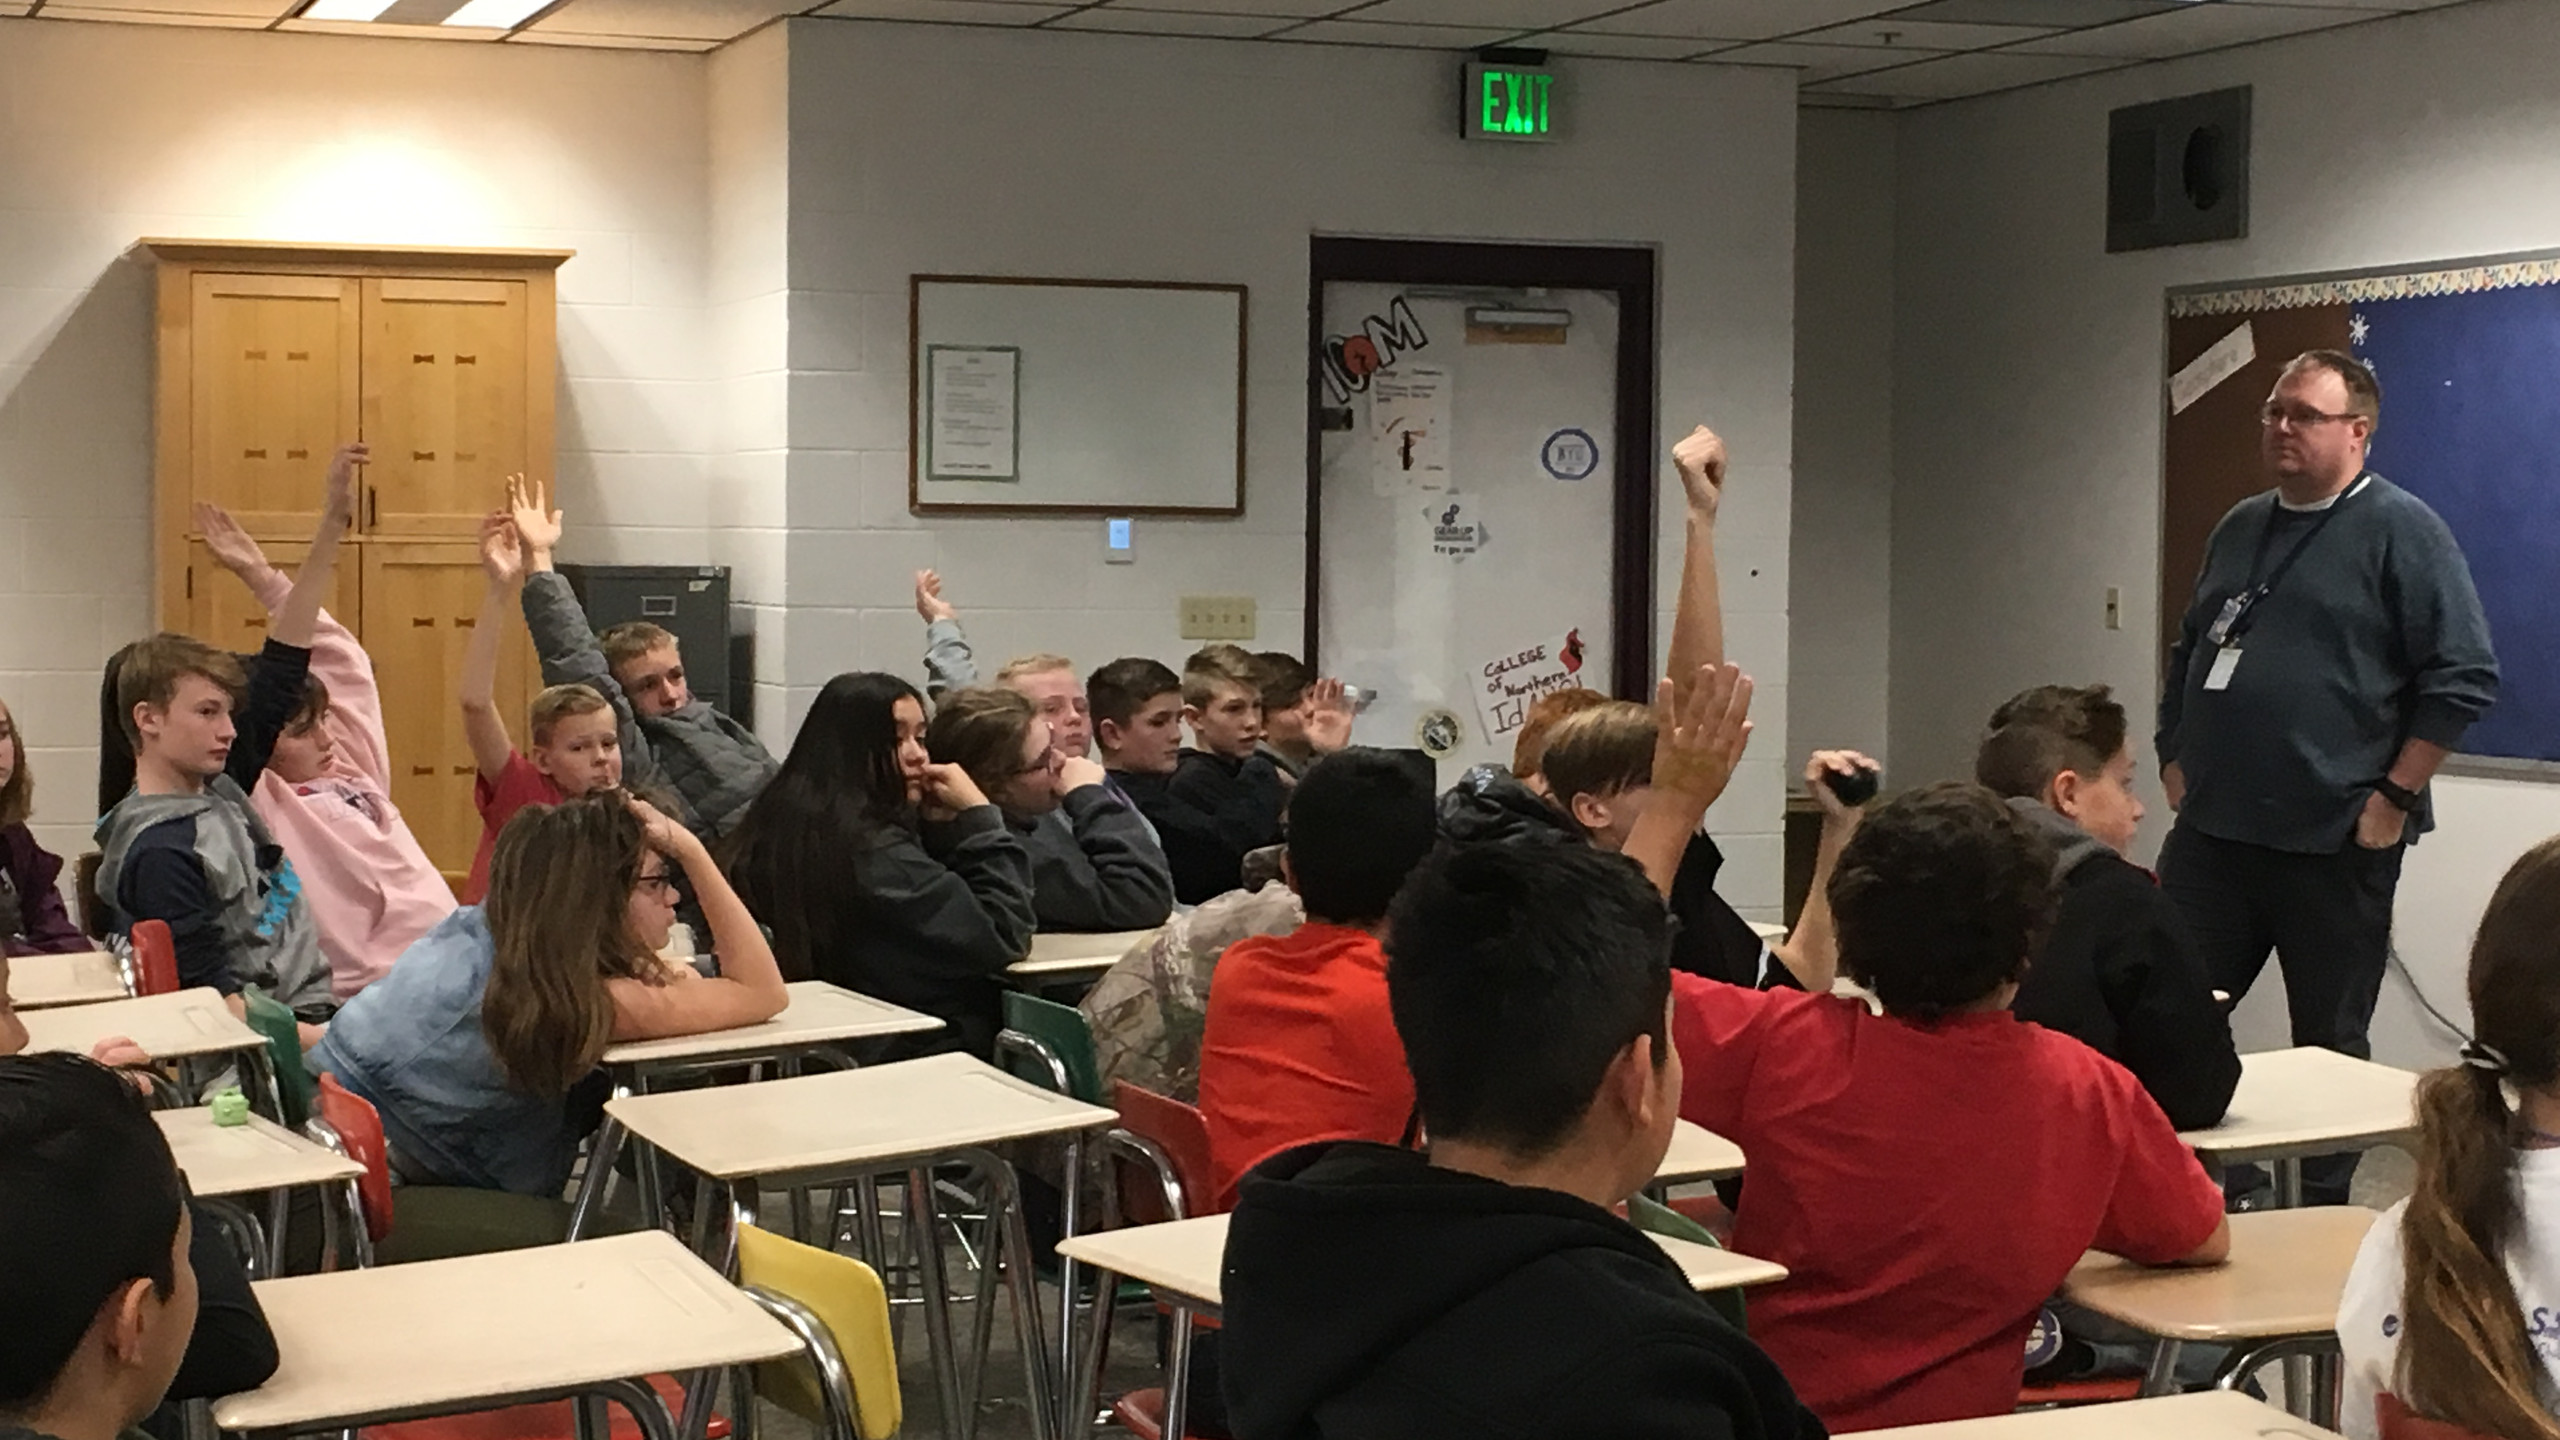 The students interact with Cody as they learn about the dangers of vaping.